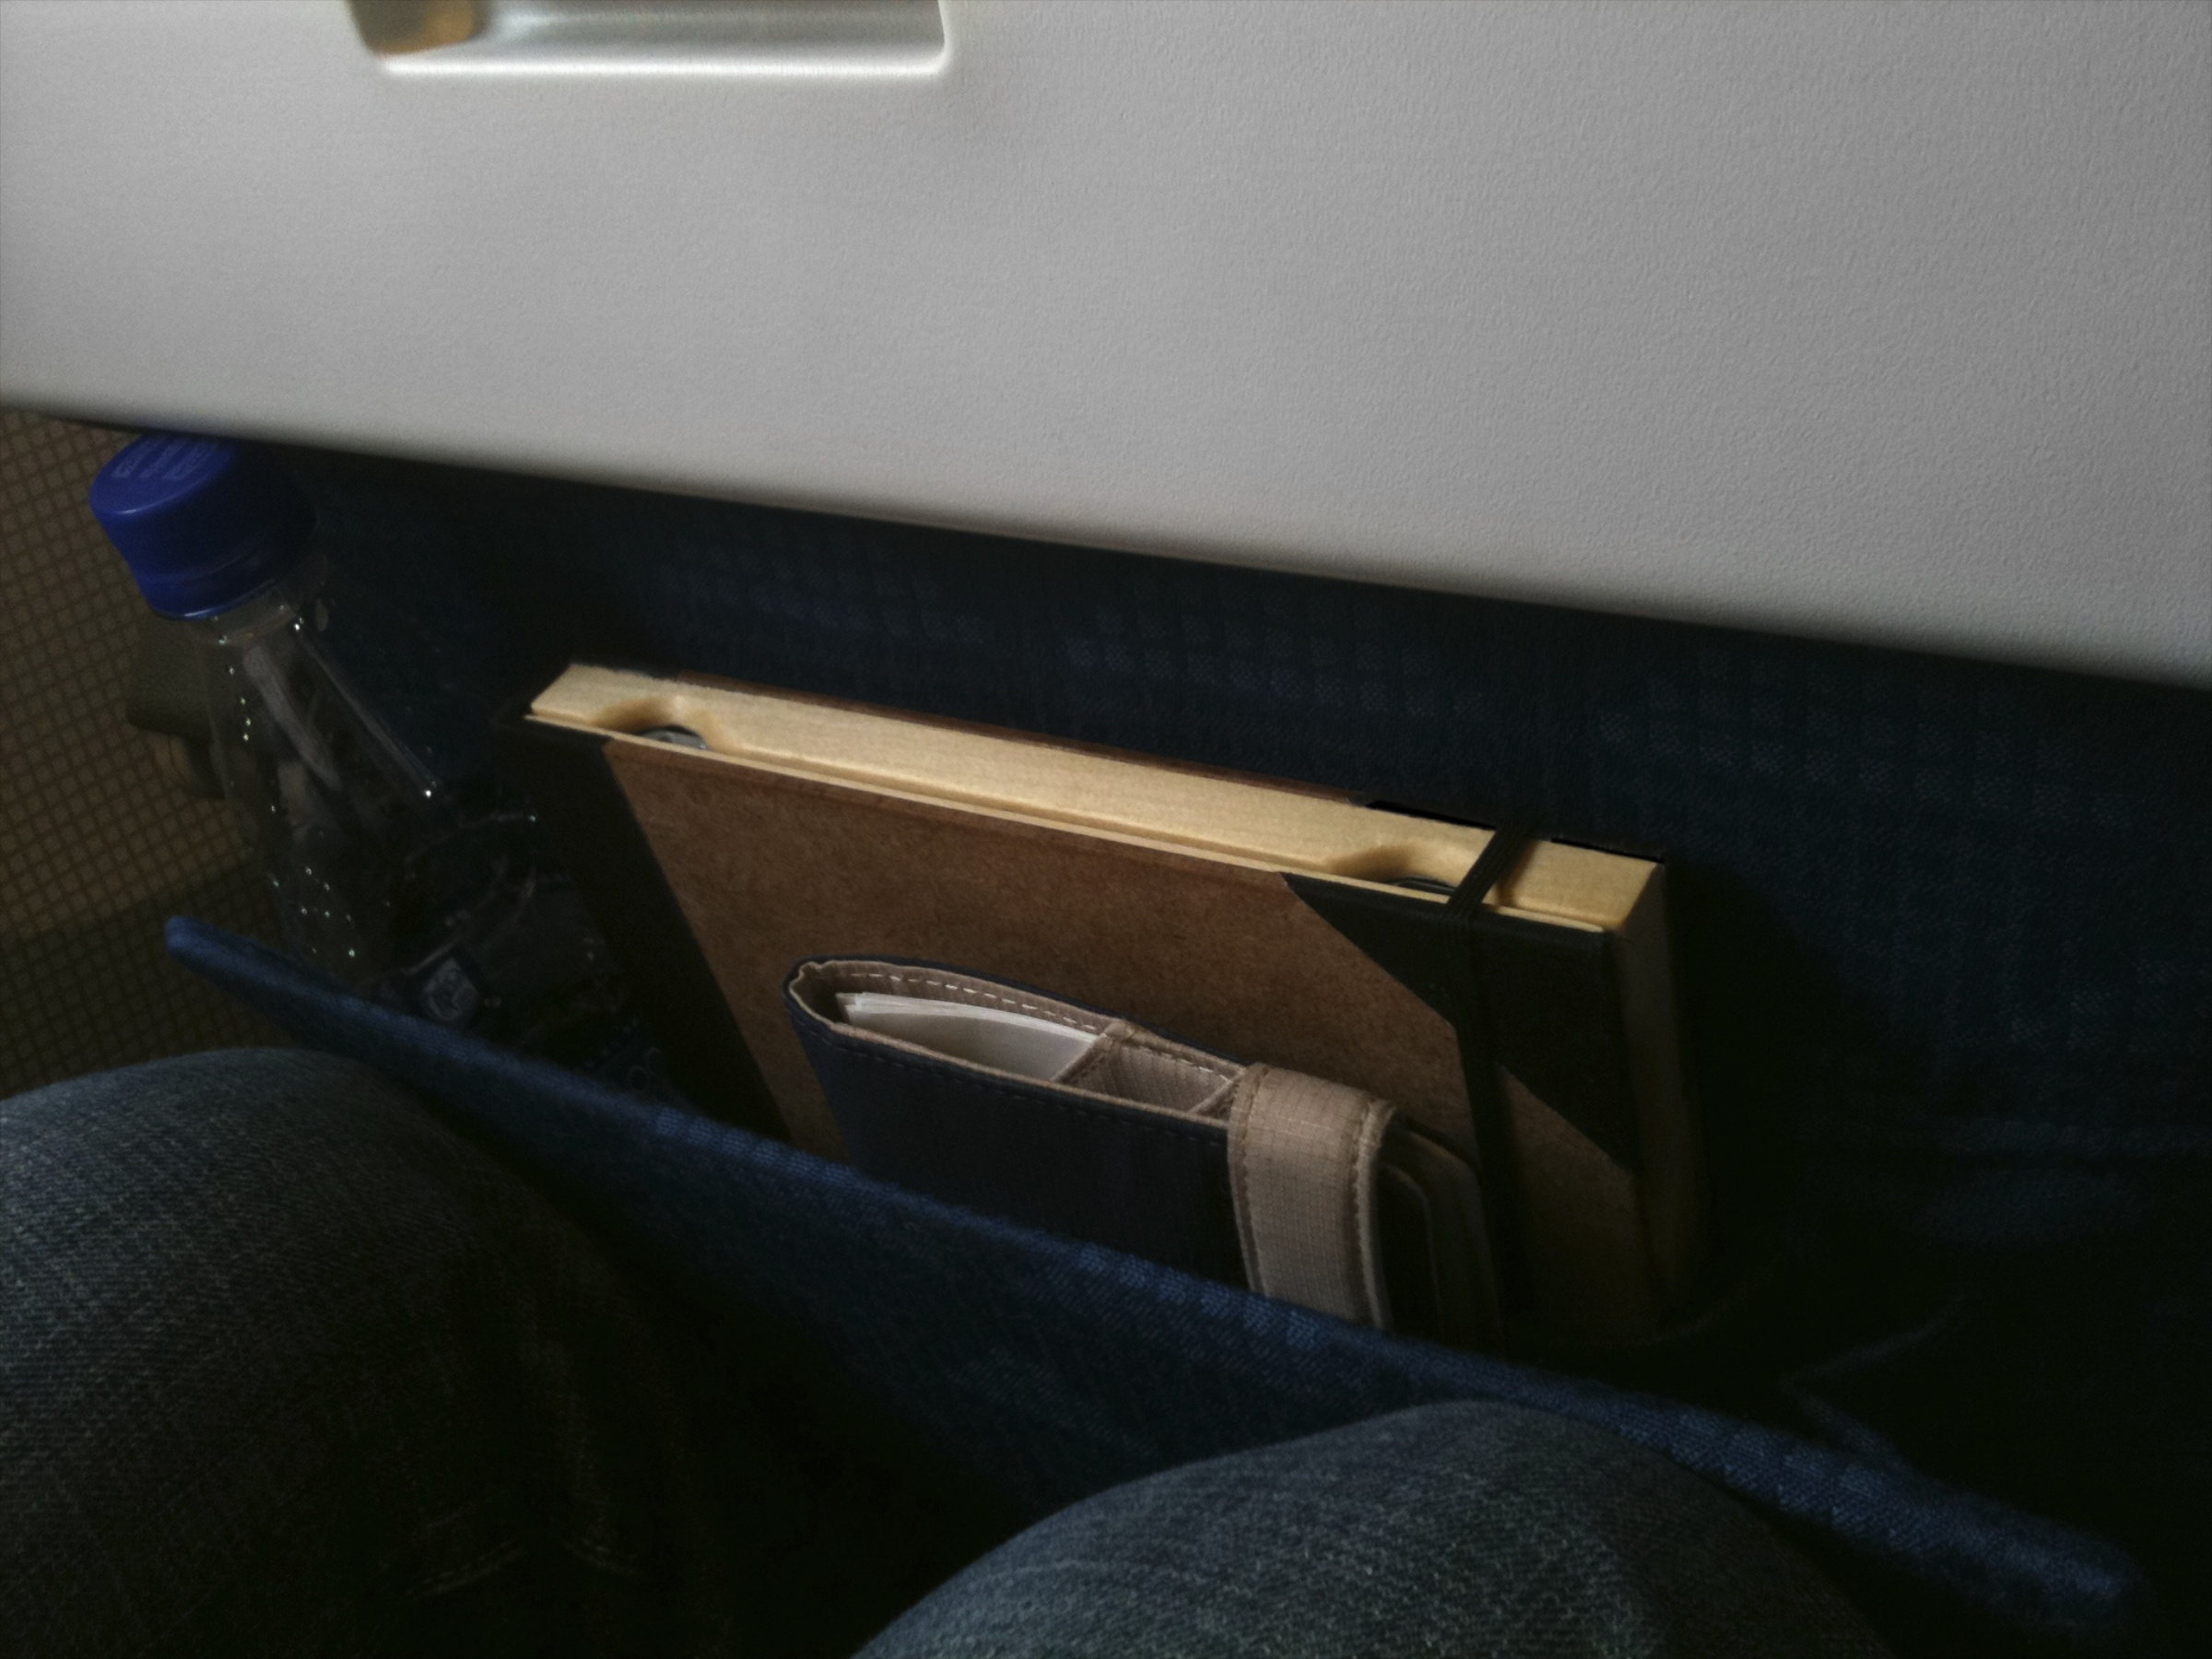 Old Book Case for iPad in a seat pocket of a plane